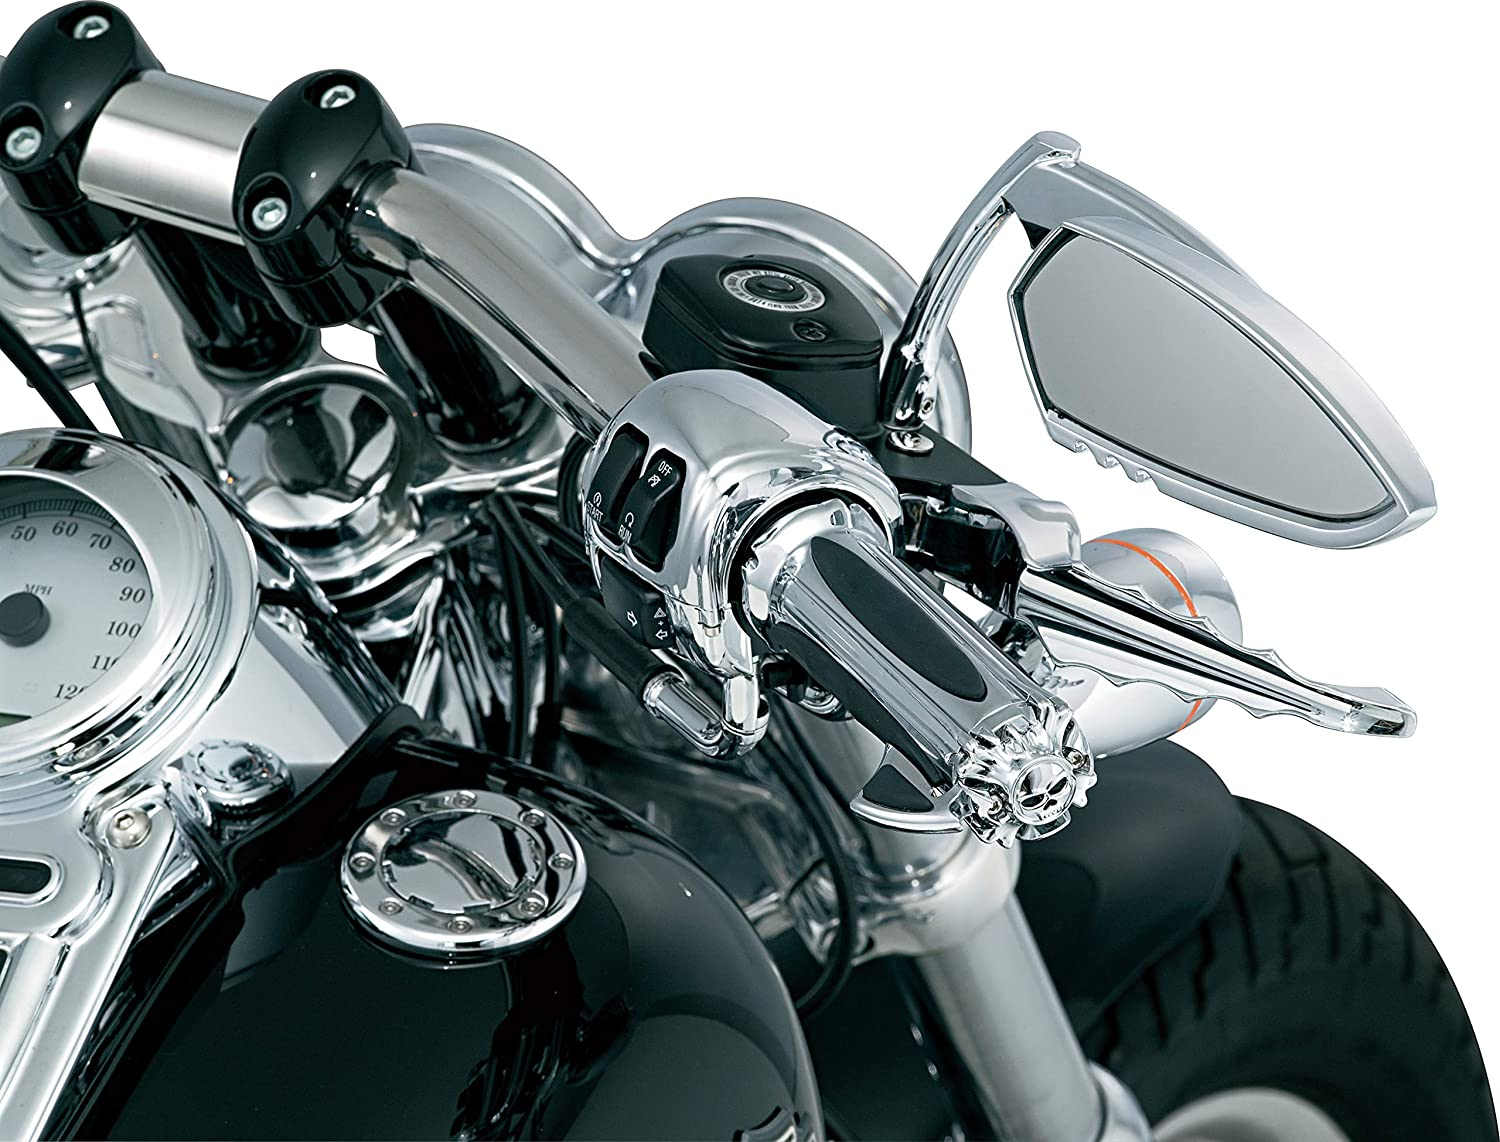 2008-19 Harley-Davidson Motorcycles Chrome 1 Pair Kuryakyn 6298 Premium Handlebar Grips with Zombie End Caps for Electronic Throttle Control